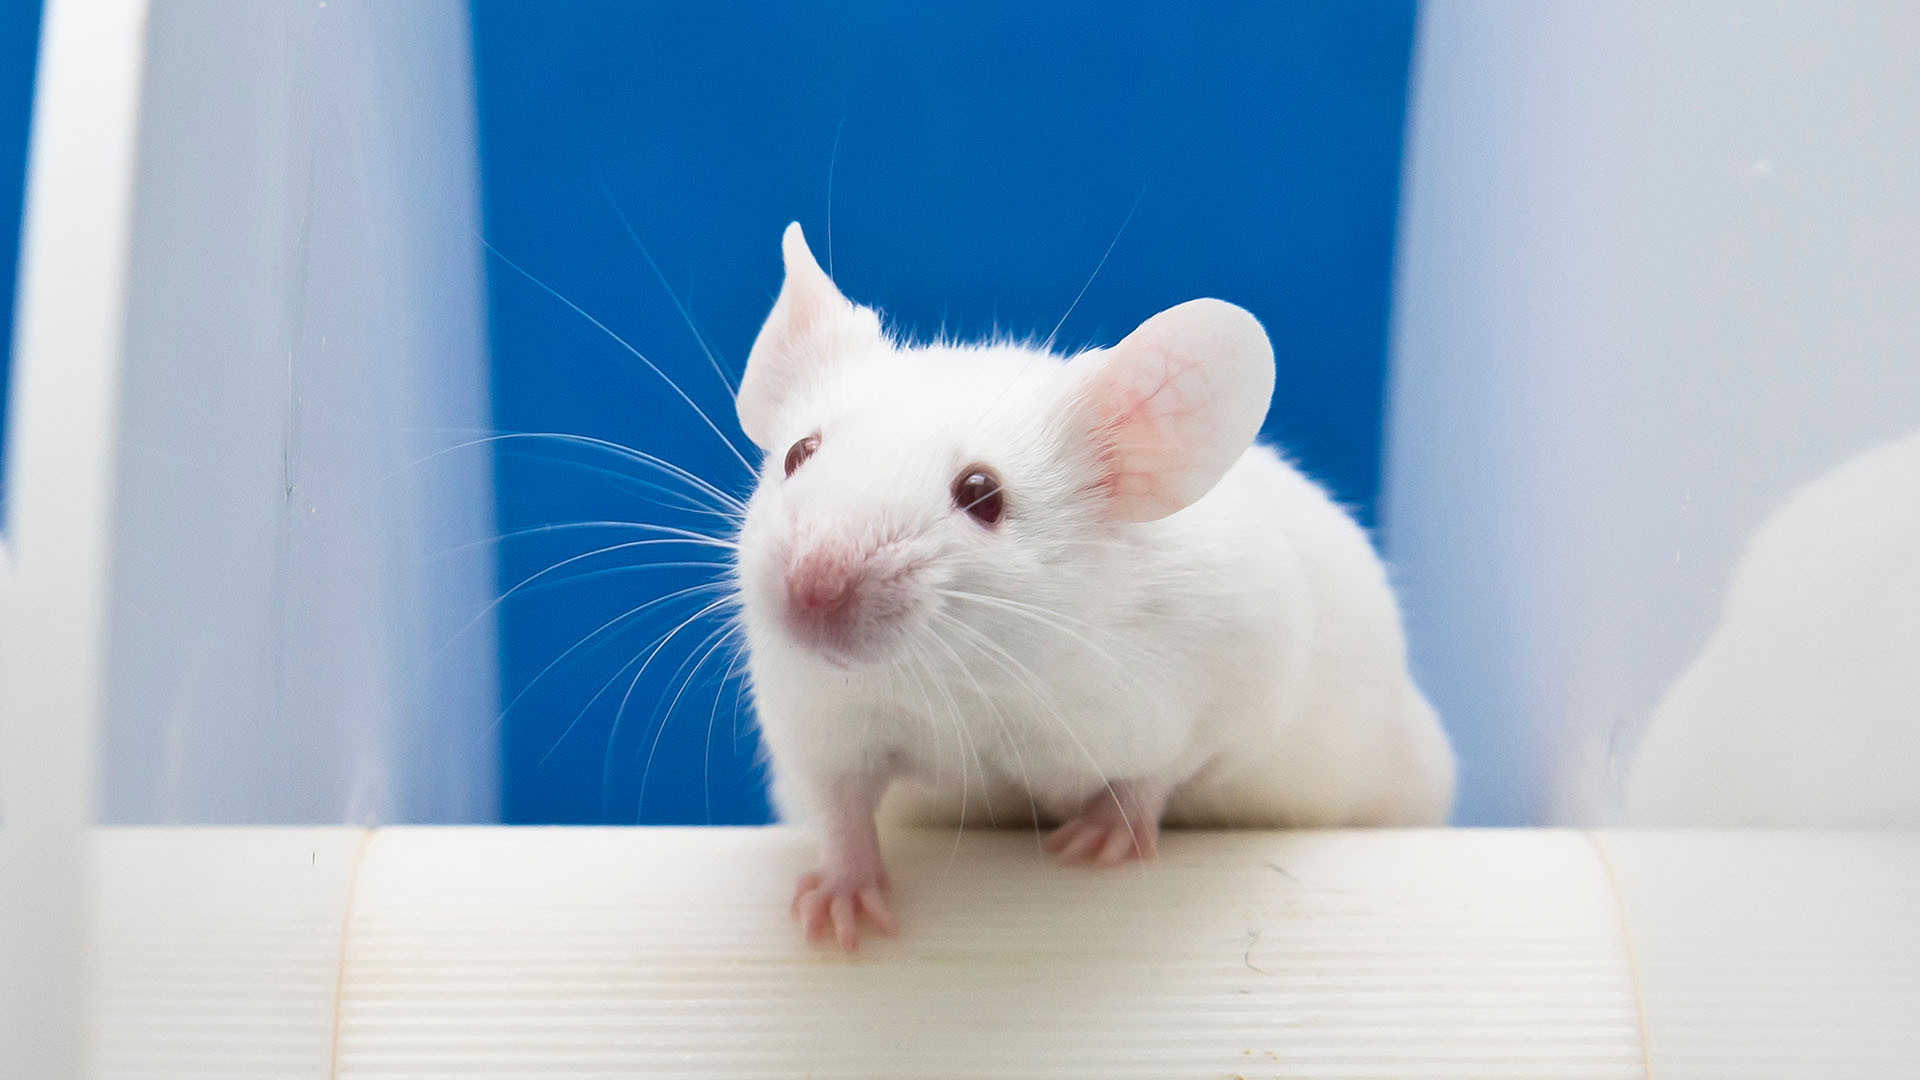 A white mouse against a blue background